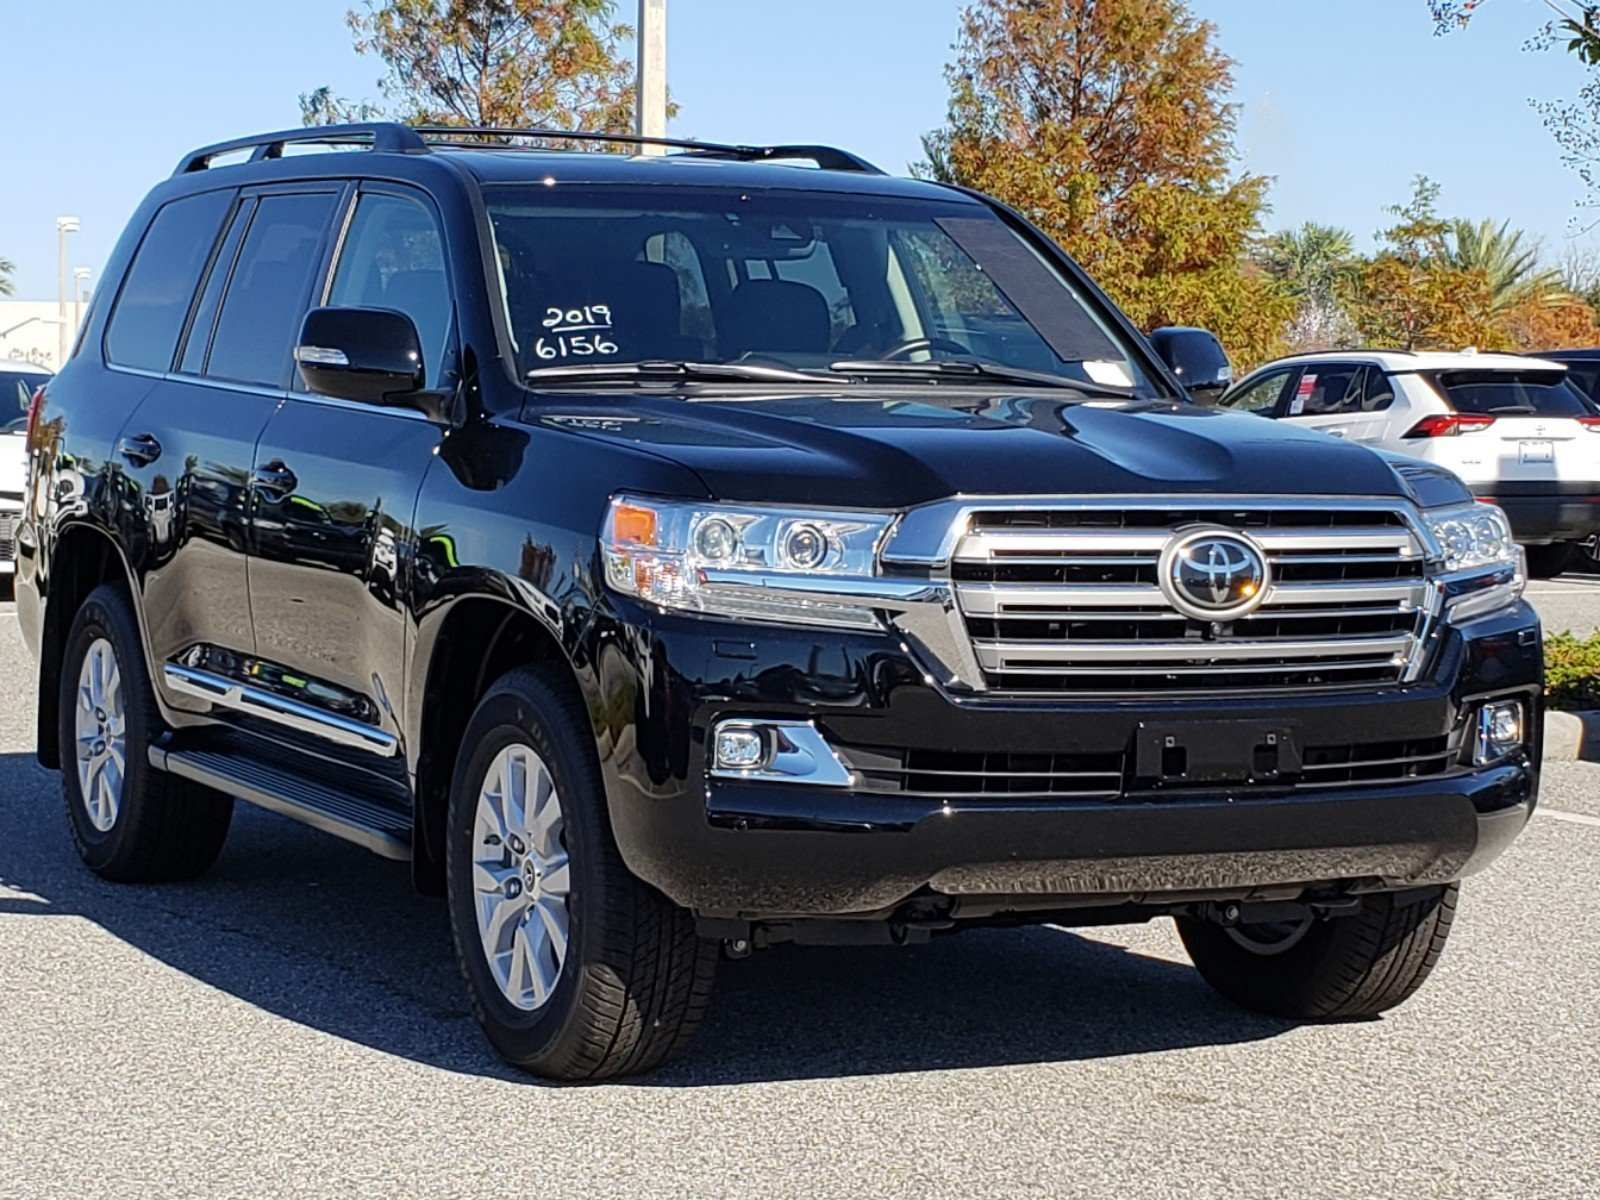 25 Best Toyota Land Cruiser V8 2019 Model